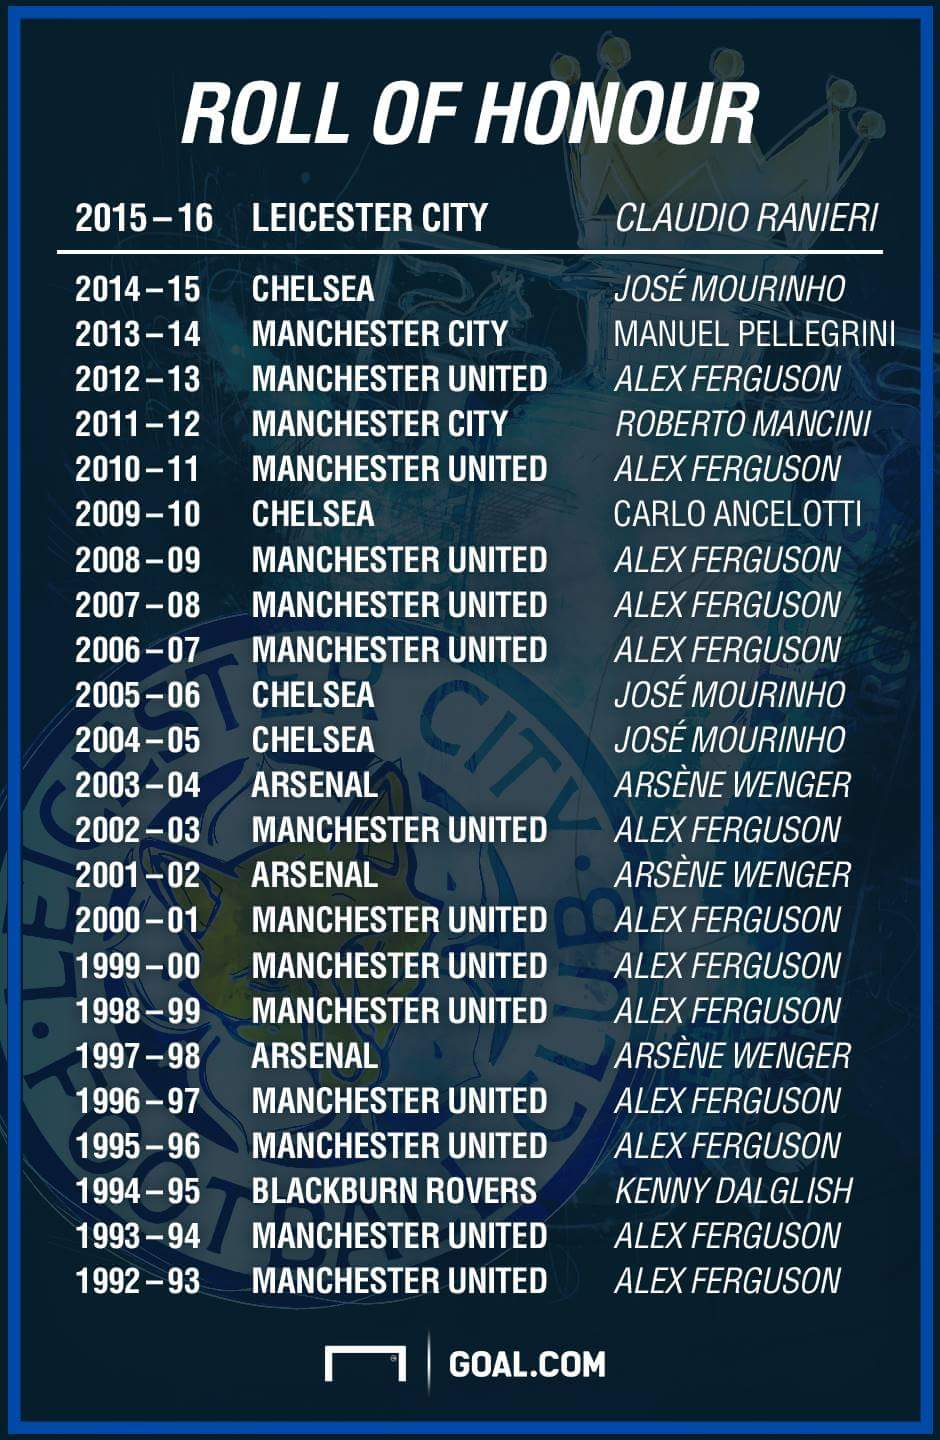 3670105_lcf5o_jpeg627465ee3b47c091739459704146e73e List Of English Premier League Champions From 1993 Till Date